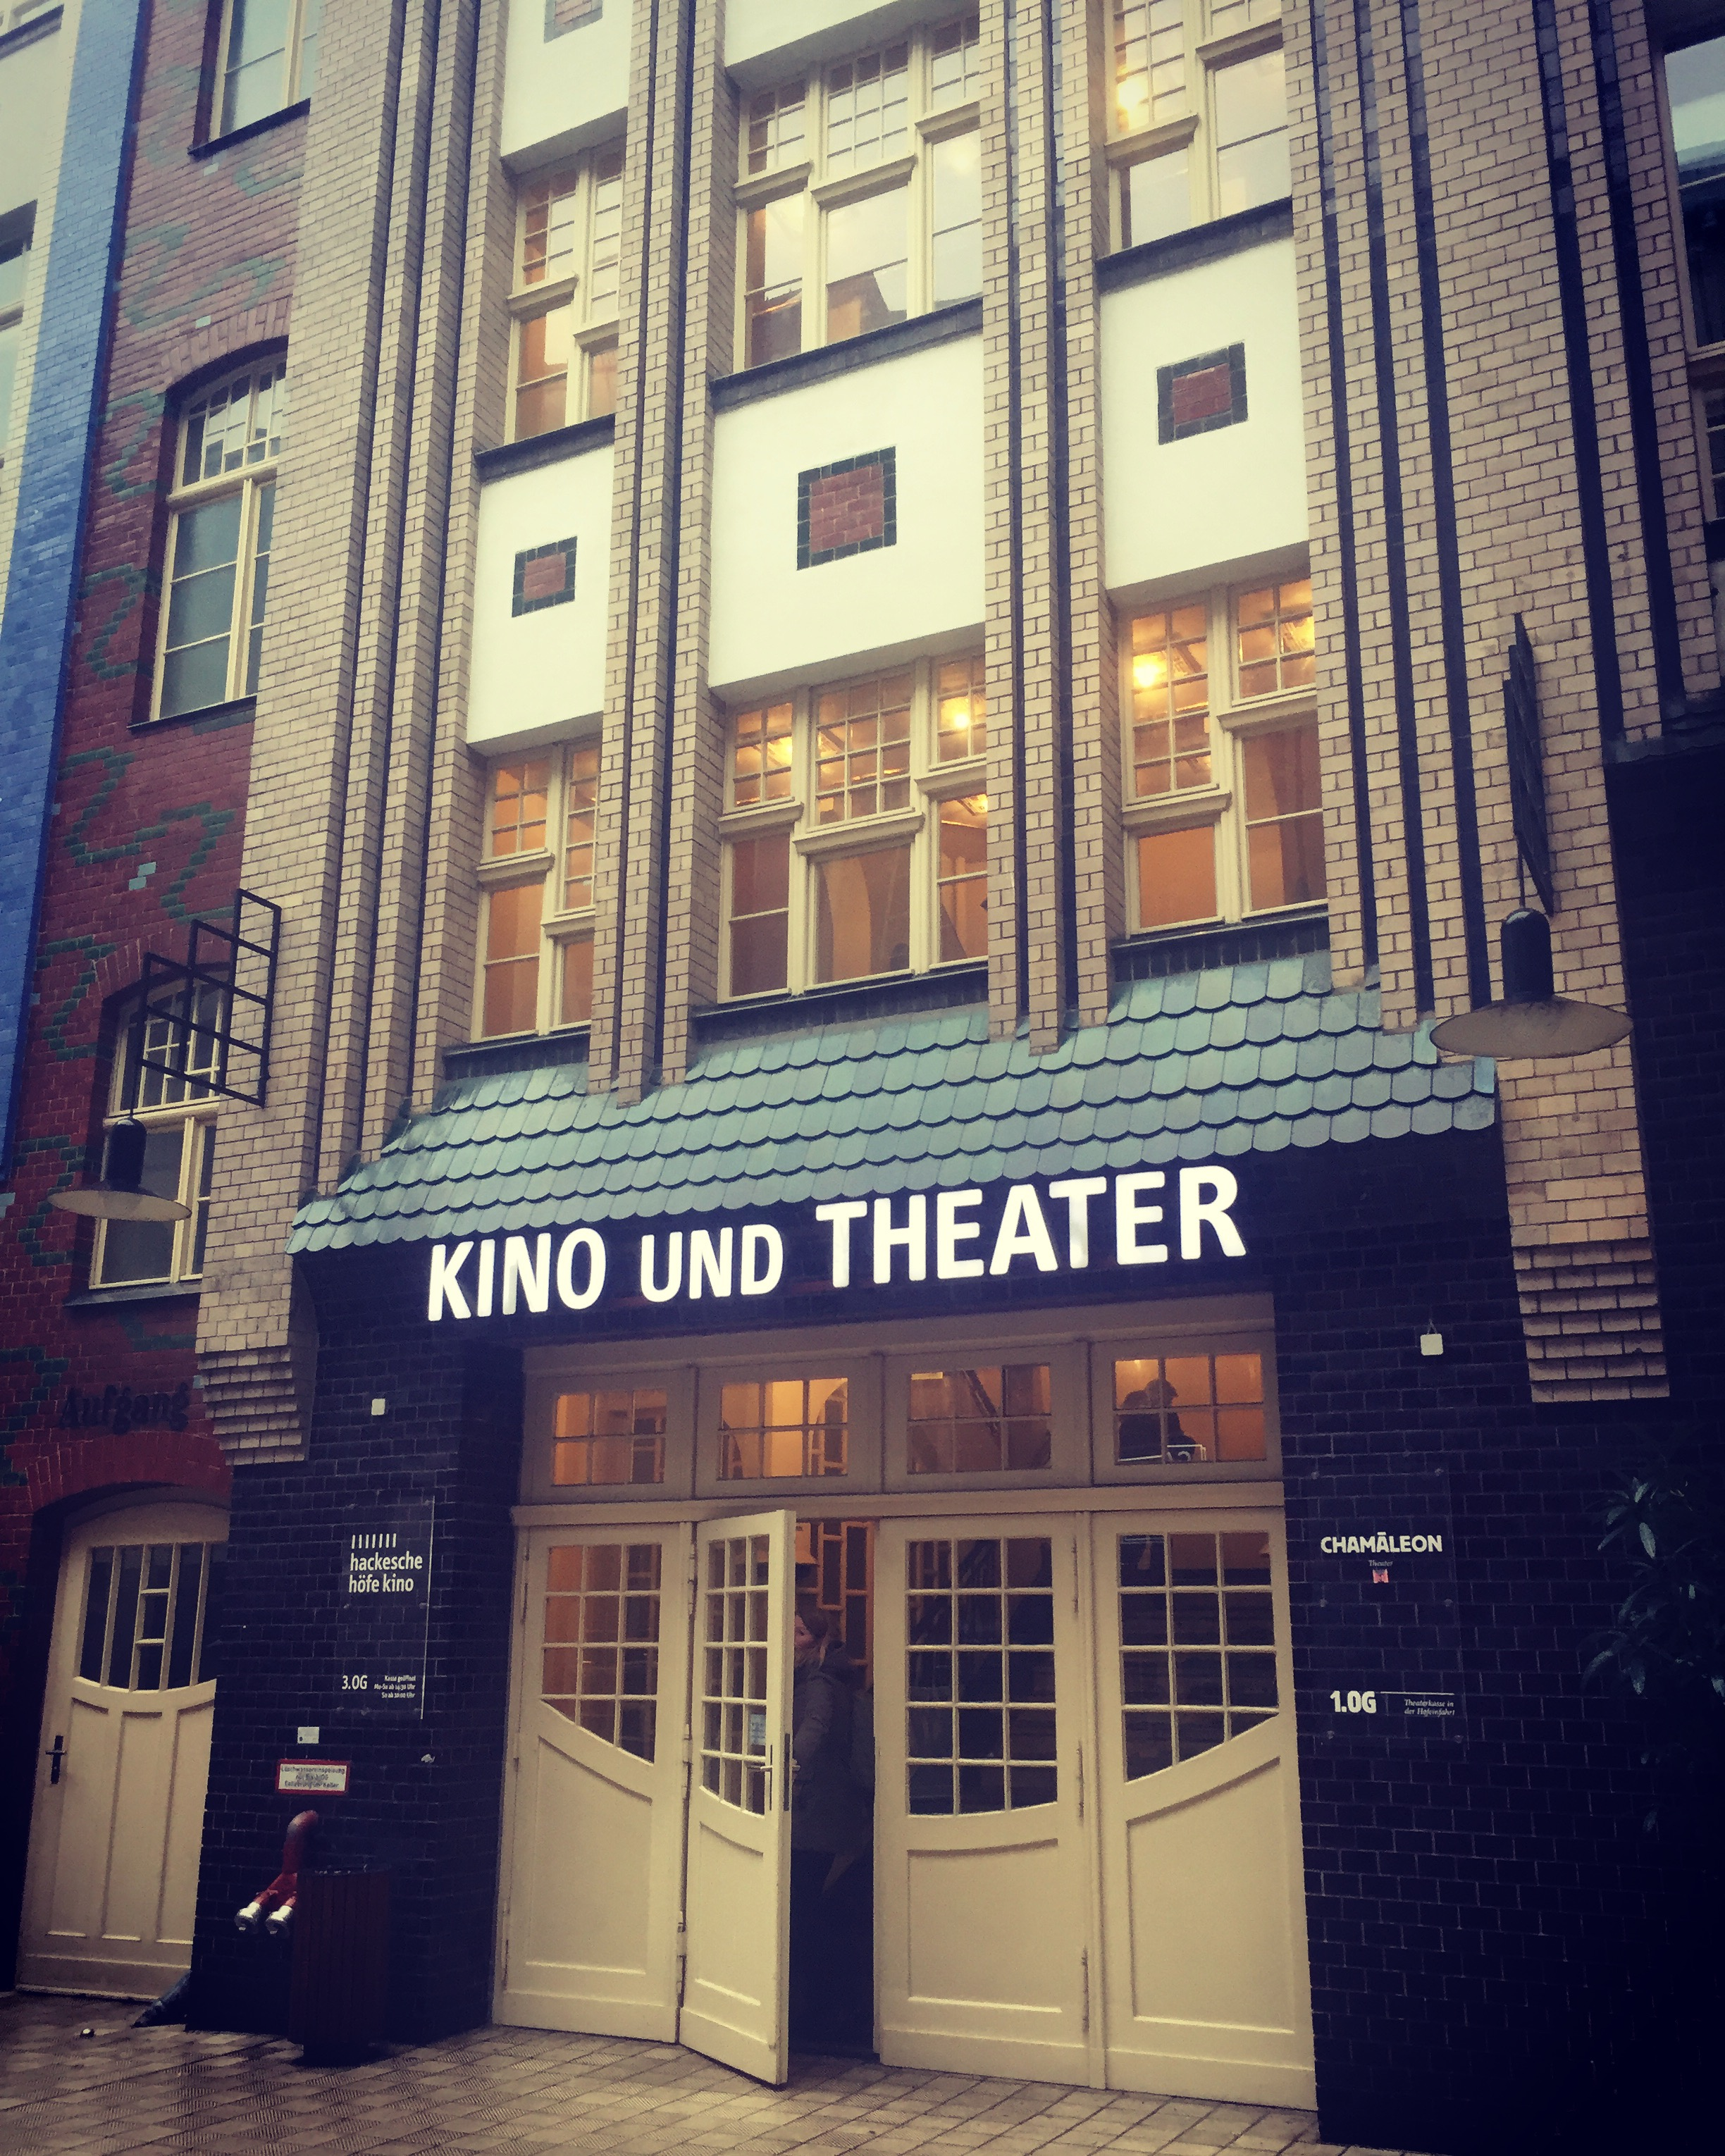 Kino Und Theater where Edie will play in Berlin during its cinema run